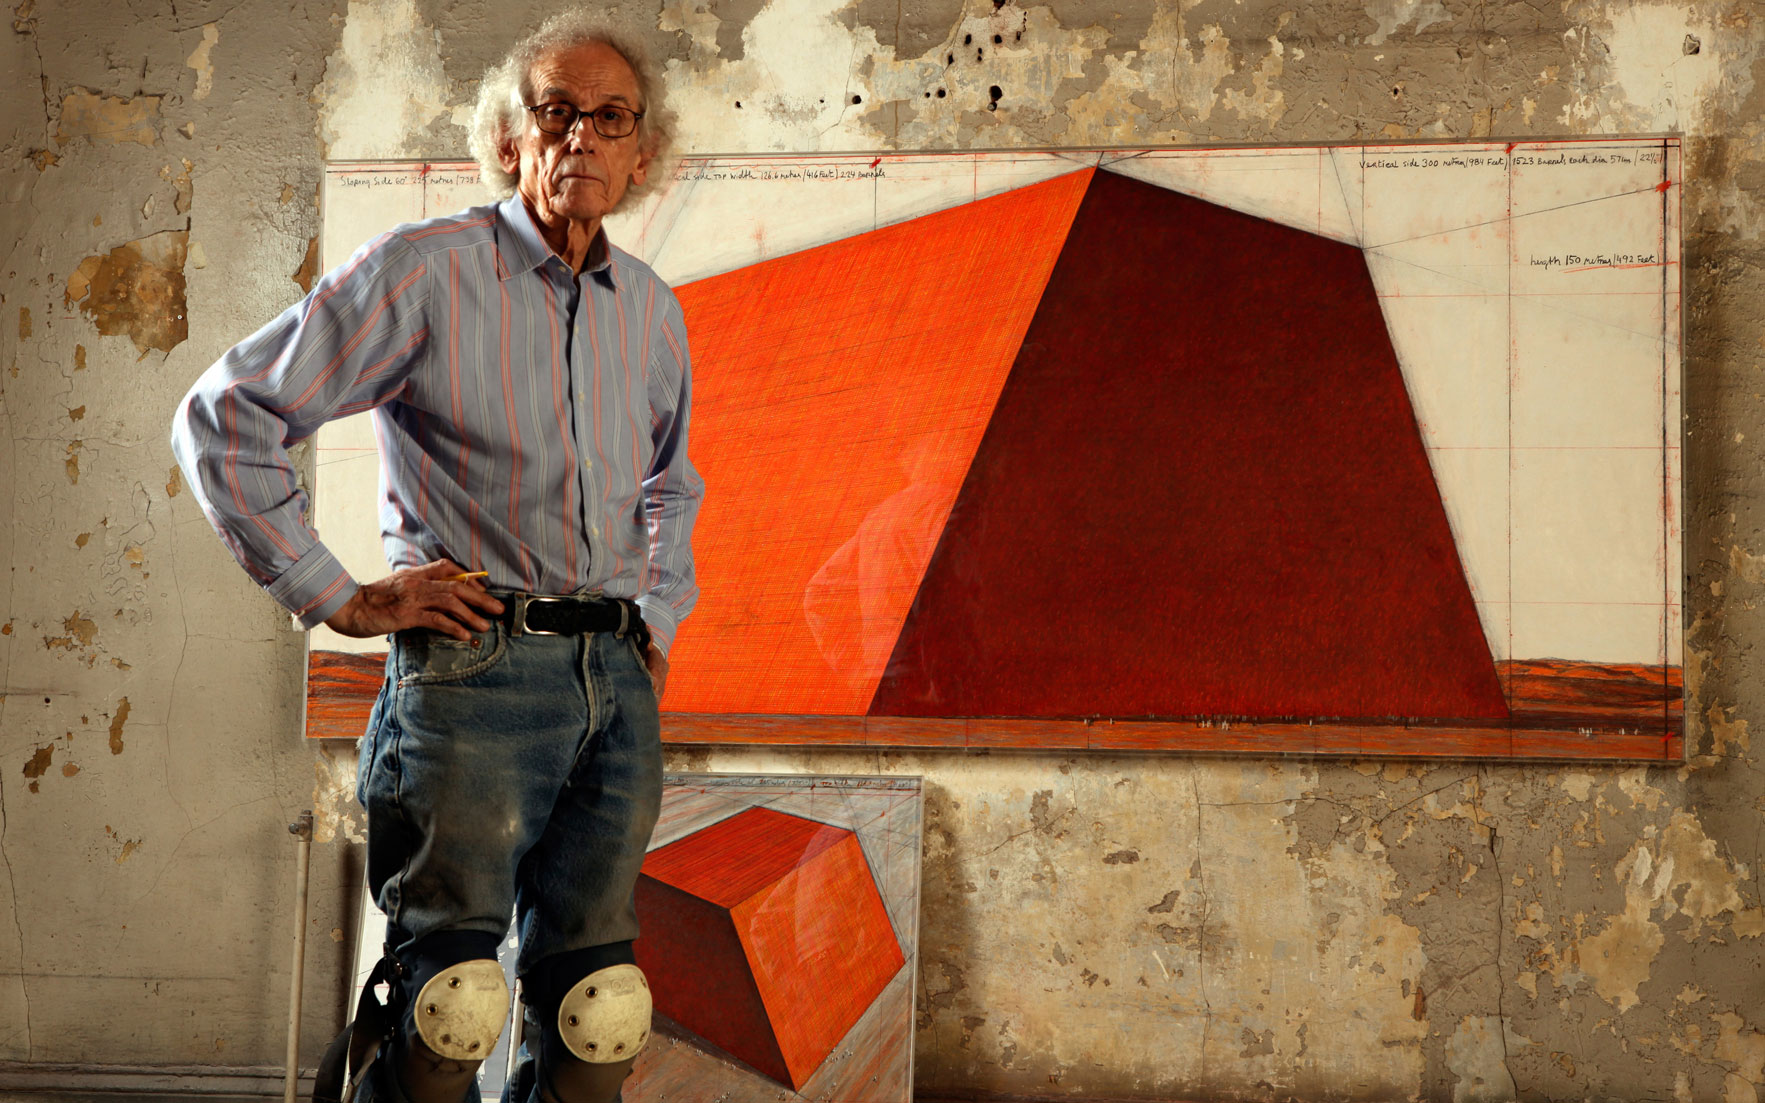 Christo's towering ambition